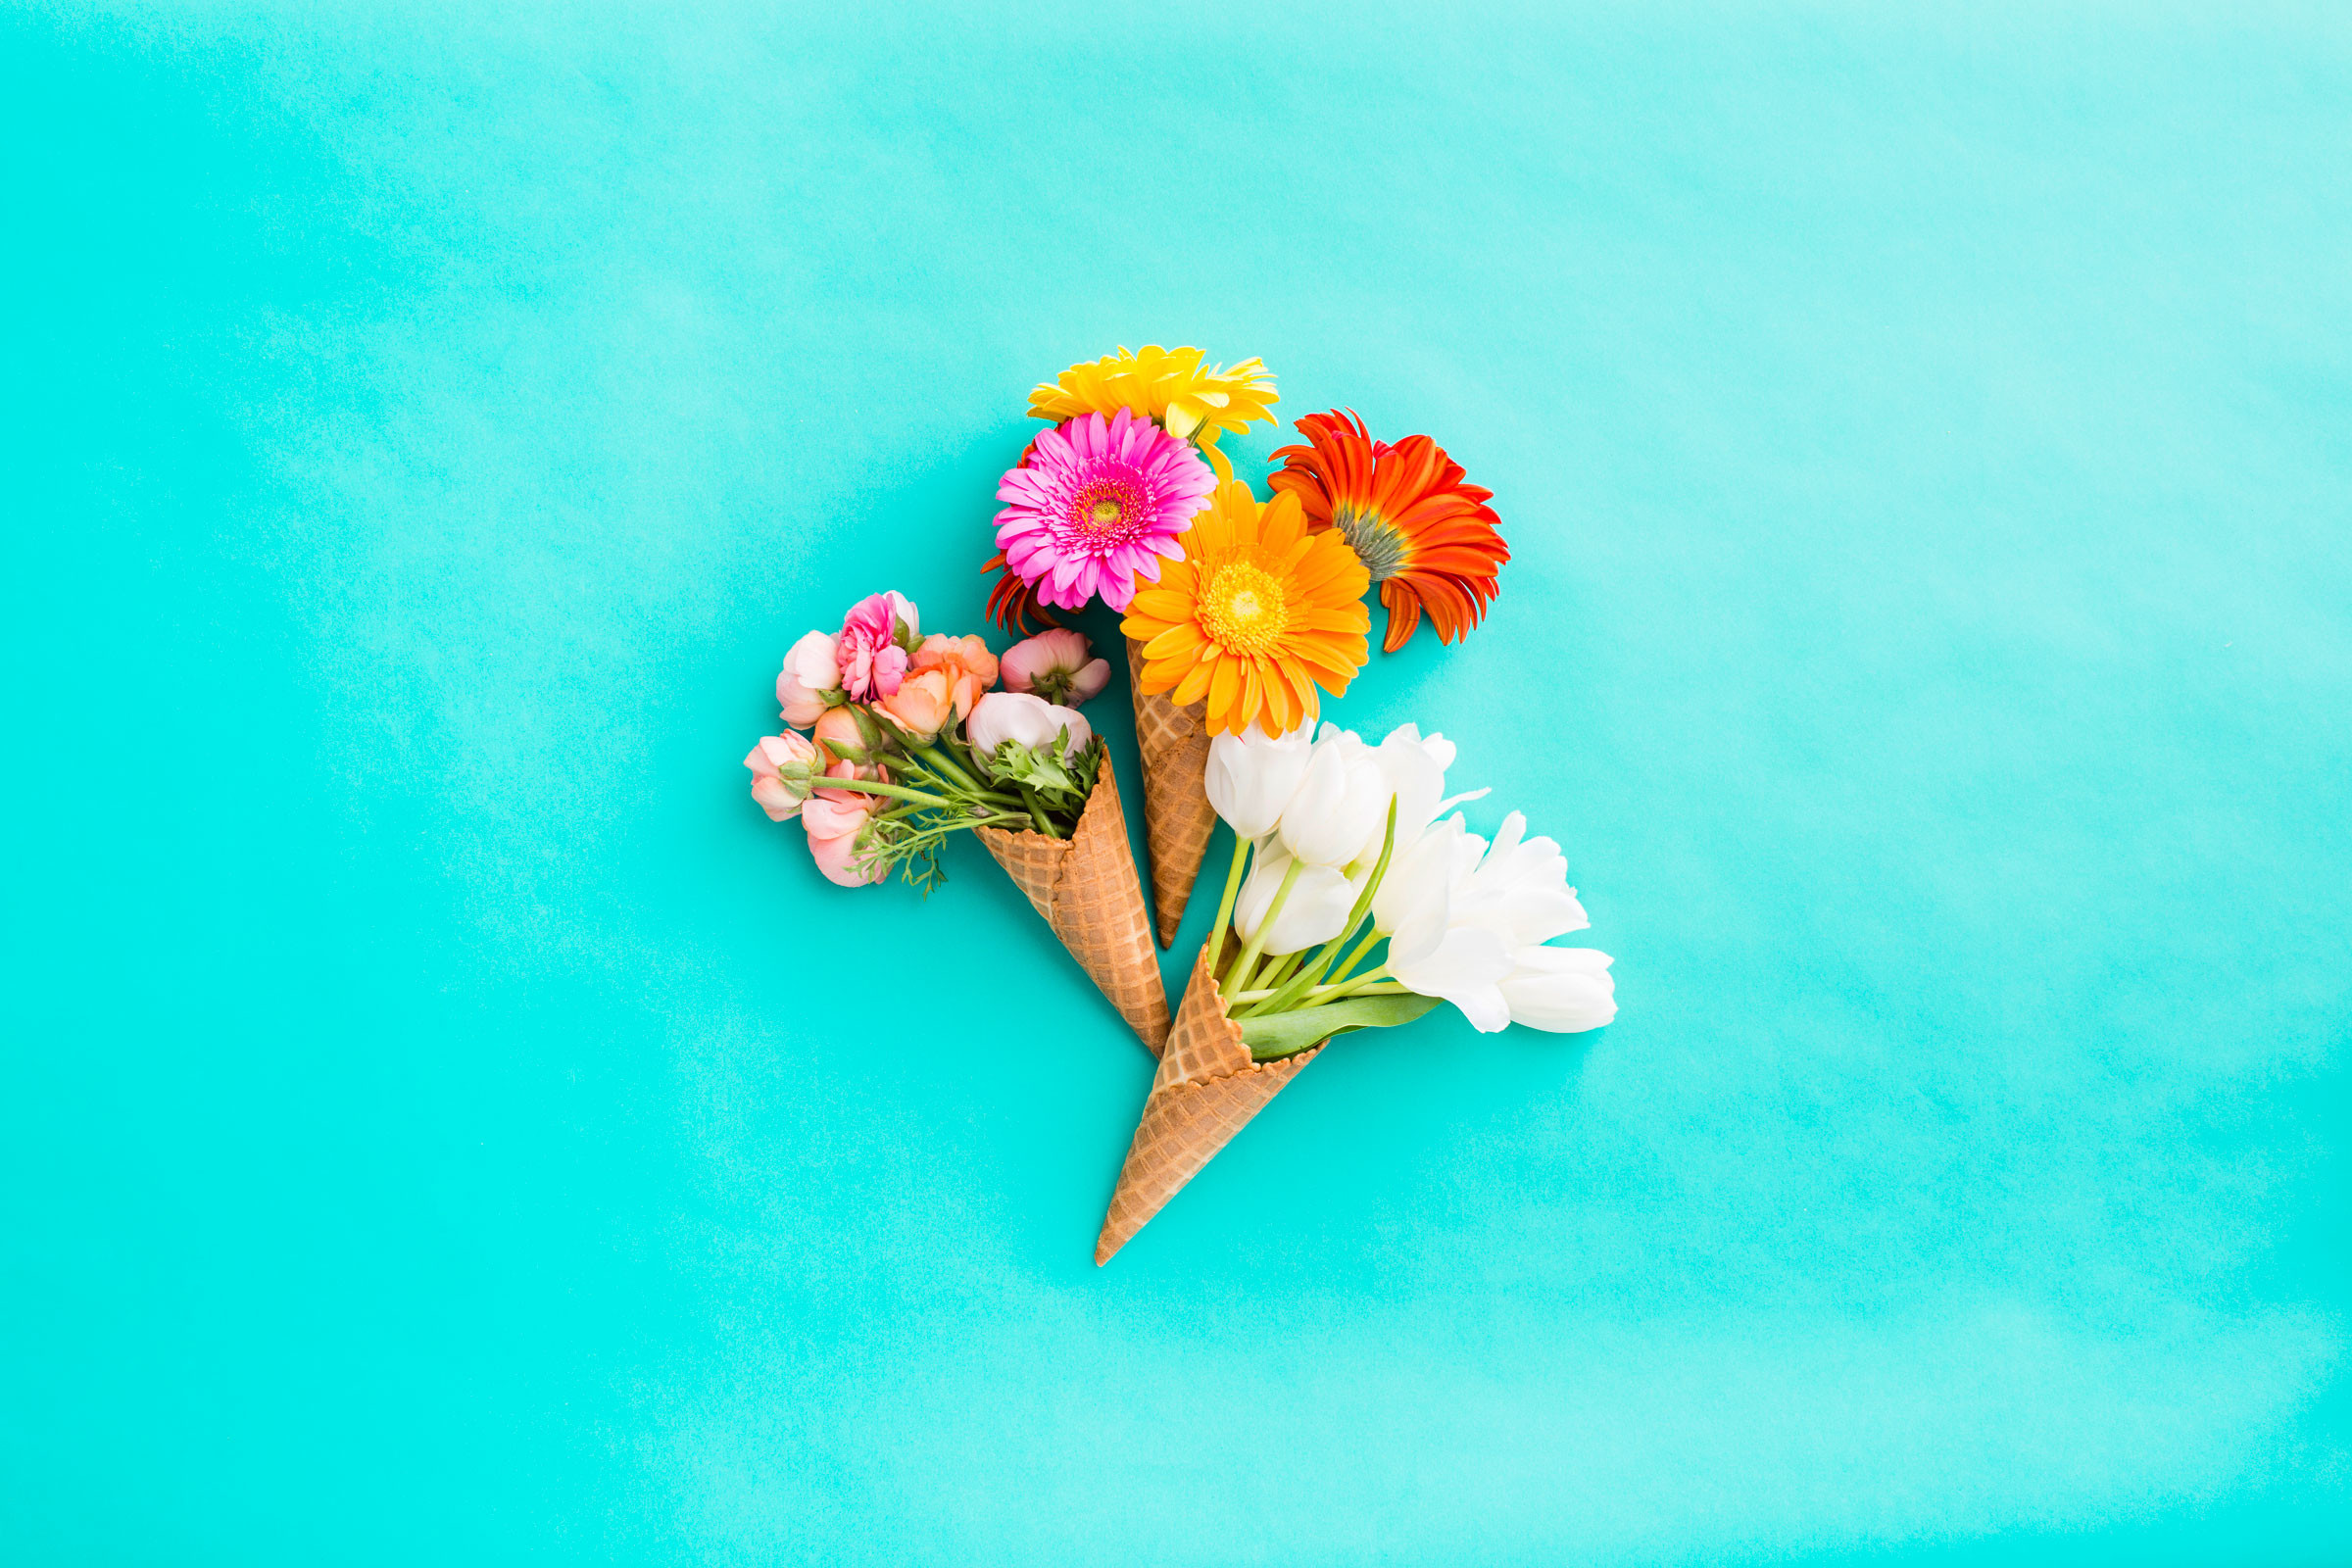 Res: 2400x1600, Download Floral Bunch of Ice Cream Cones